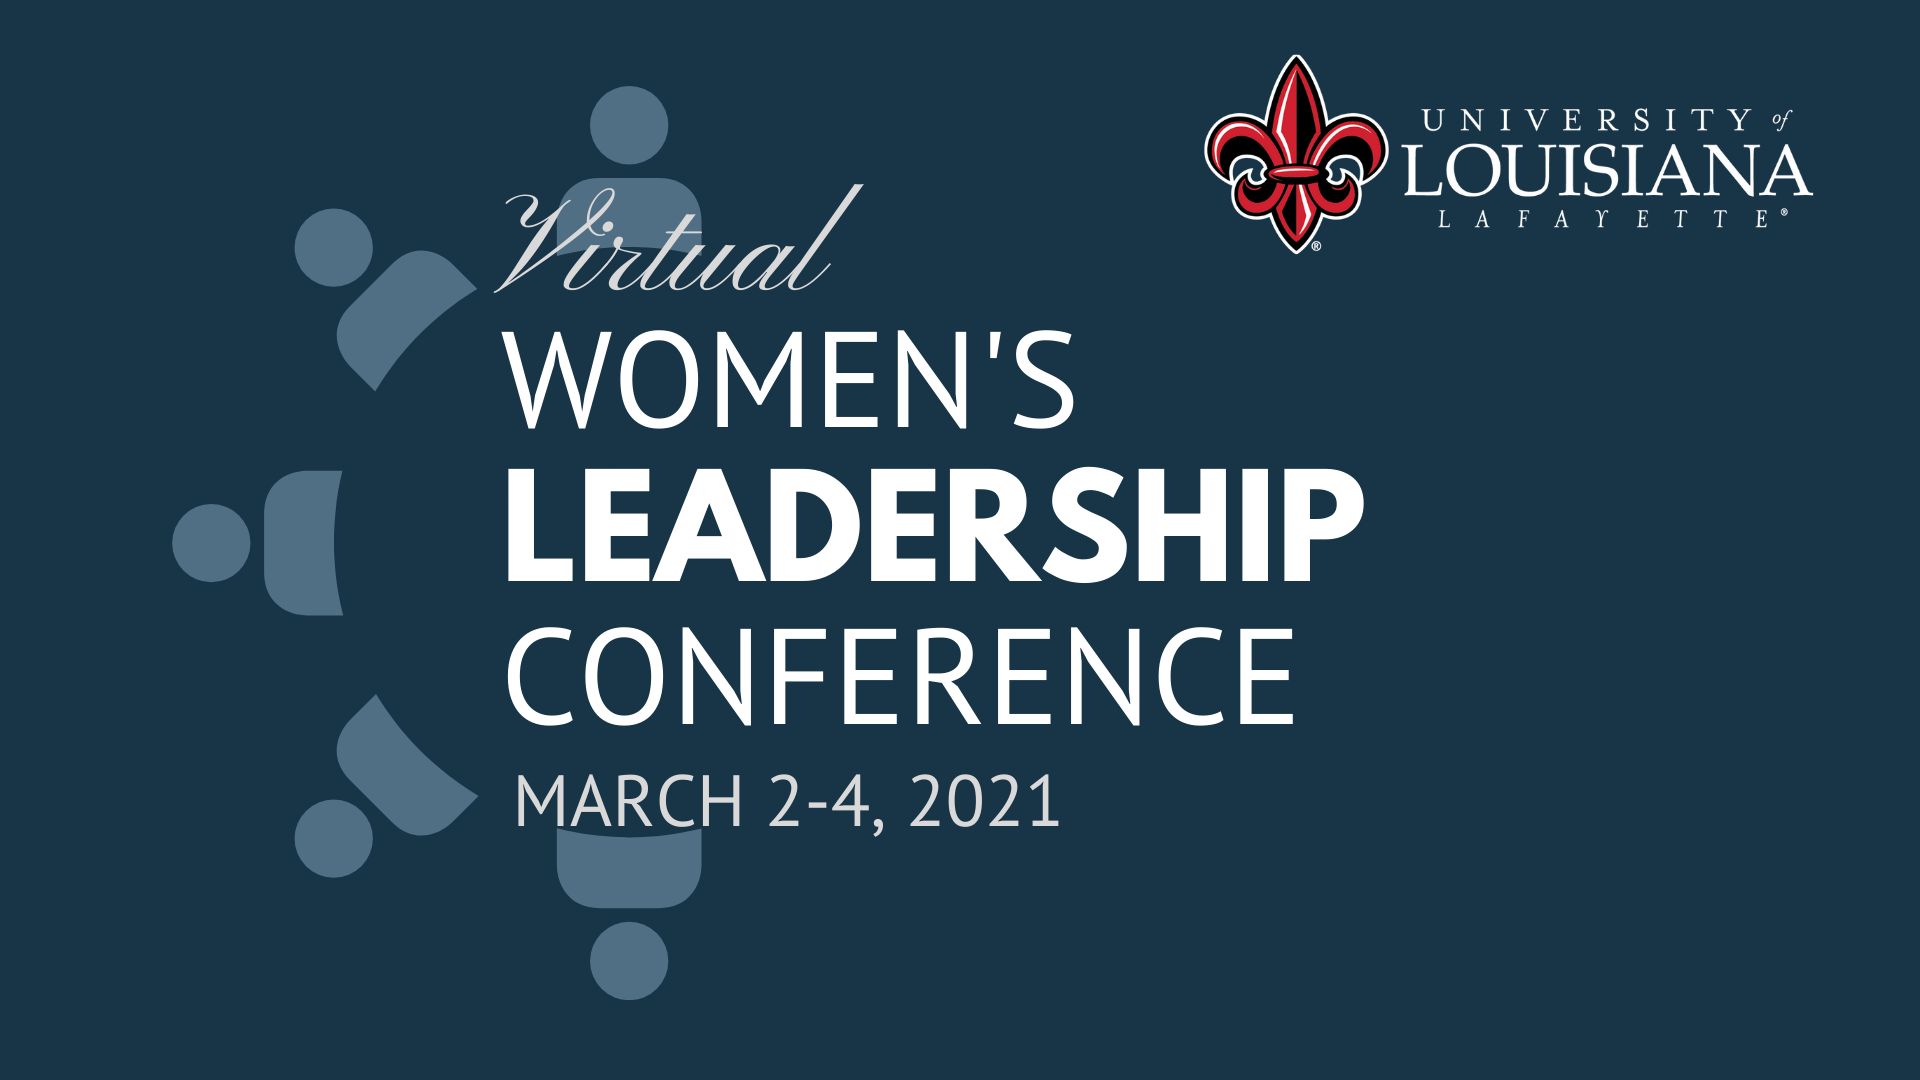 Women's Leadership Conference 2021